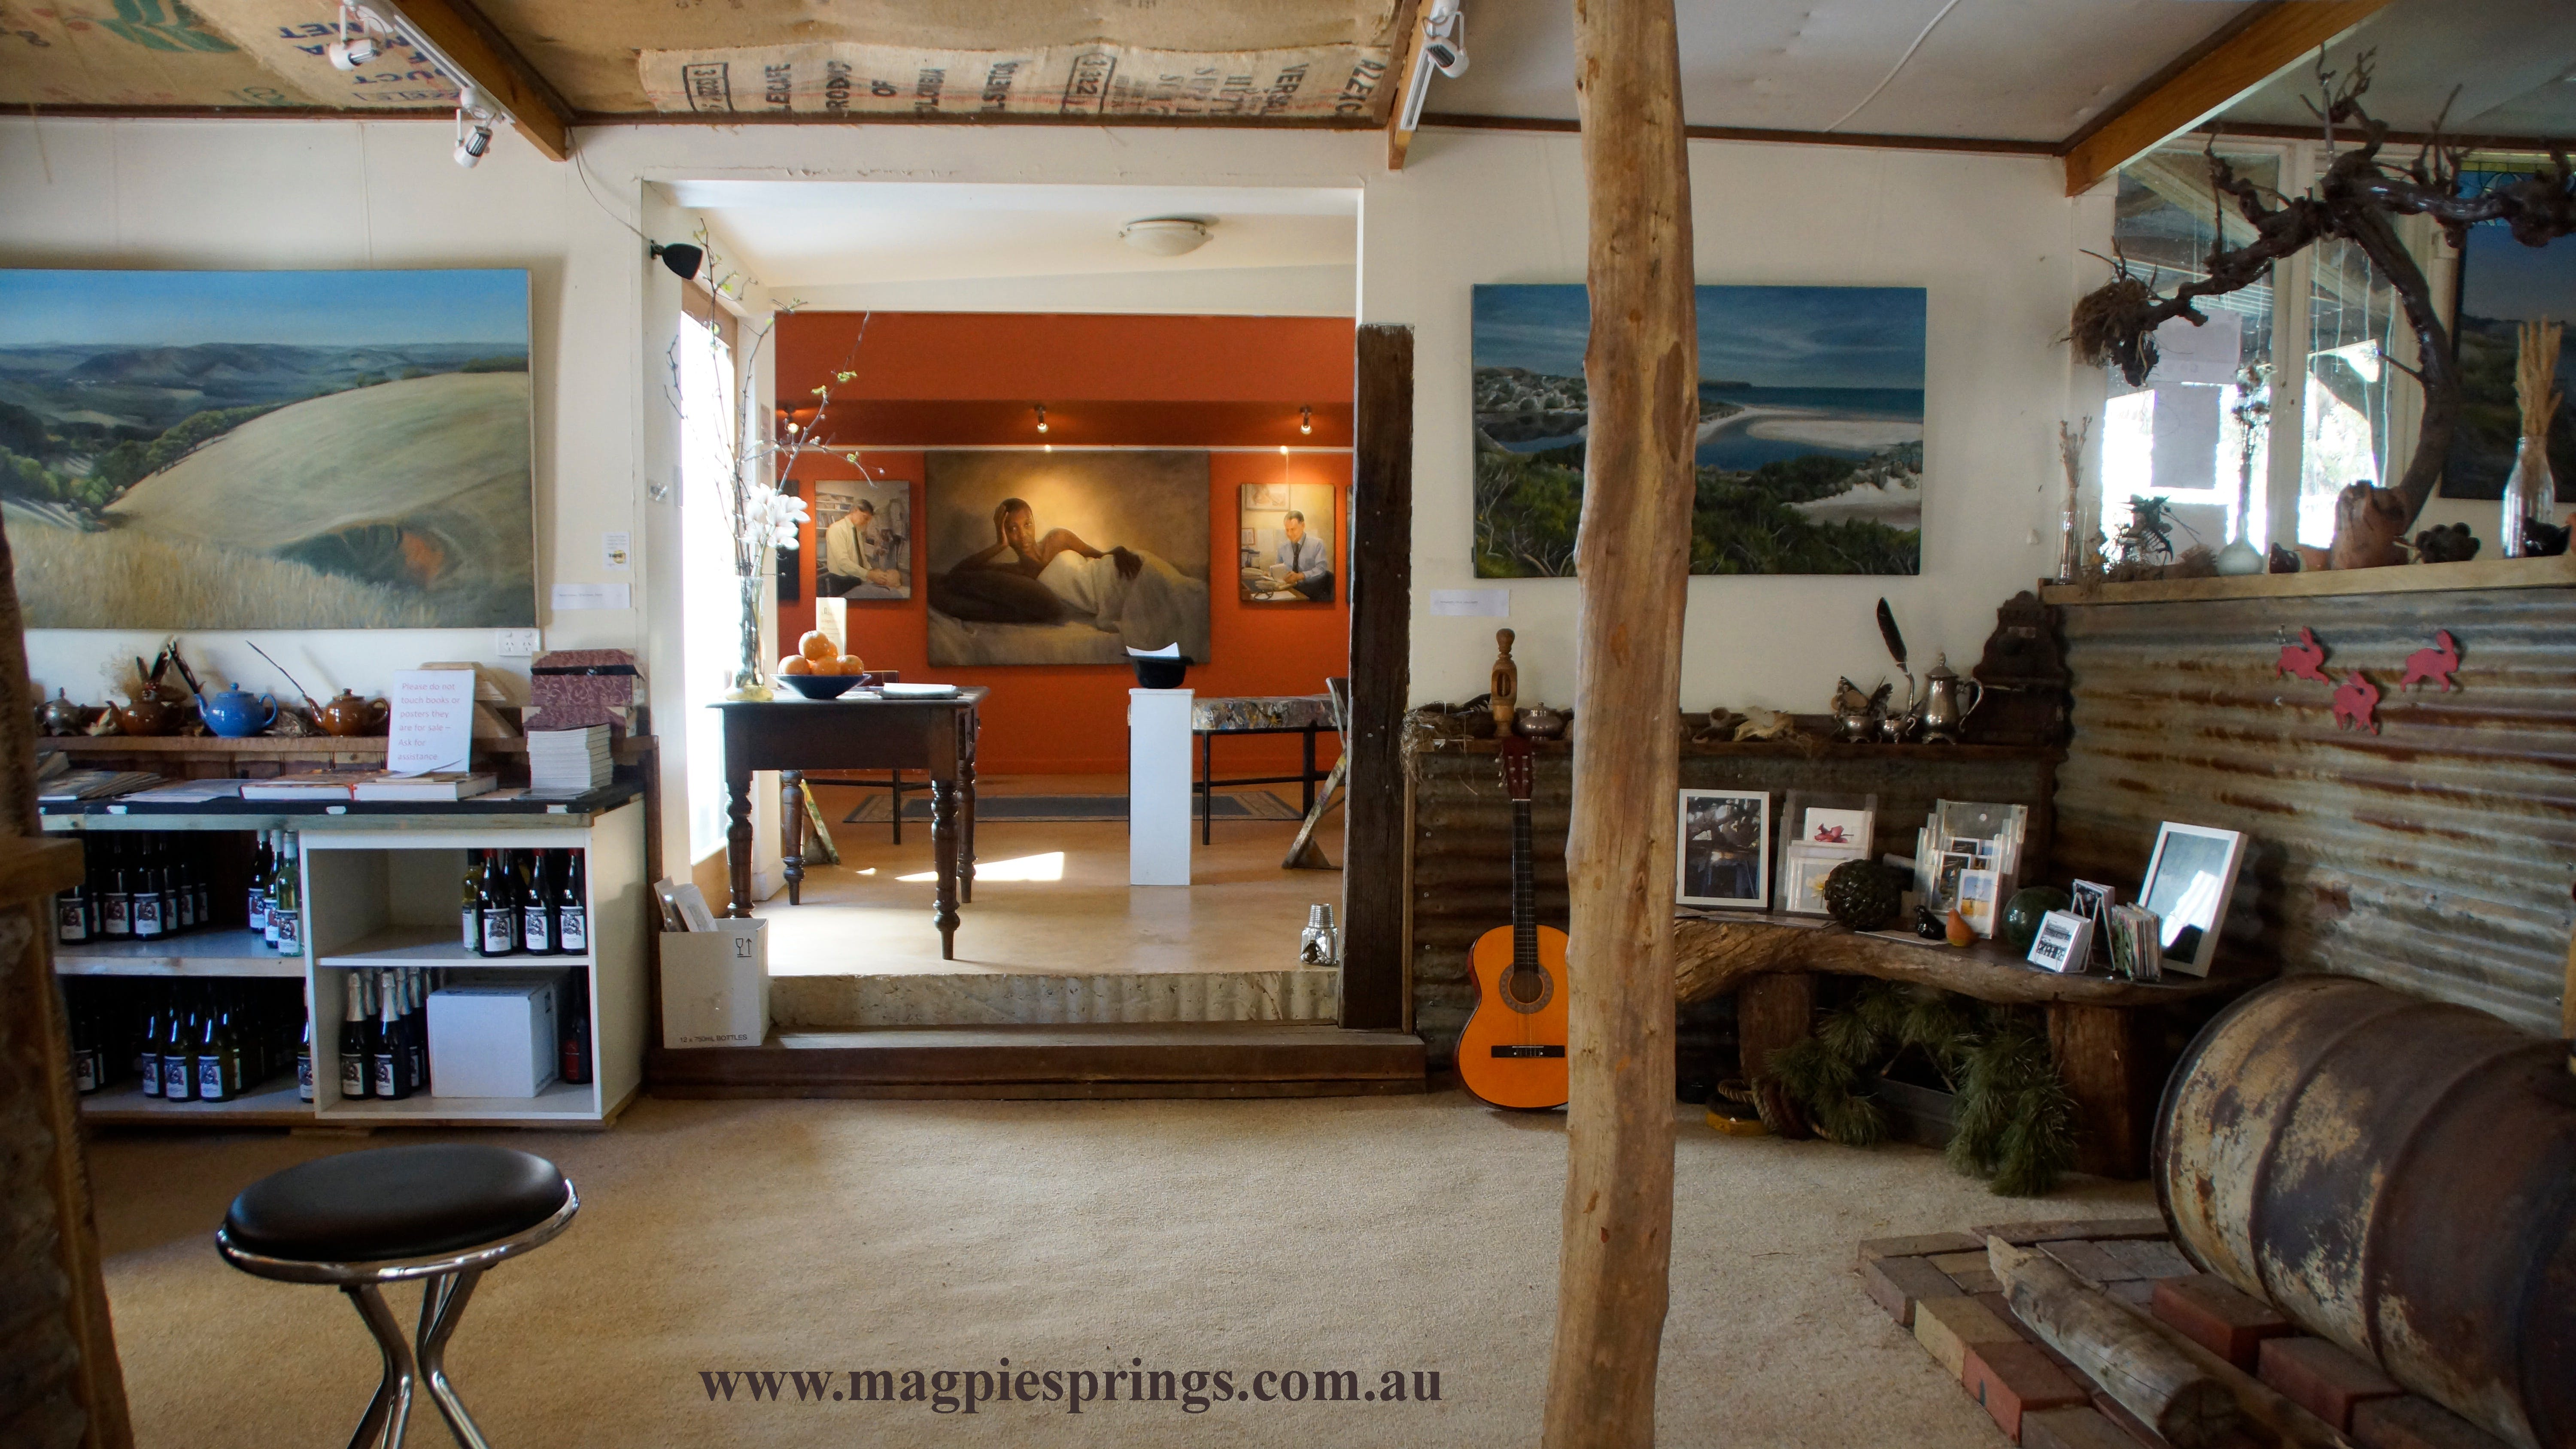 Magpie Springs gallery - Redcliffe Tourism